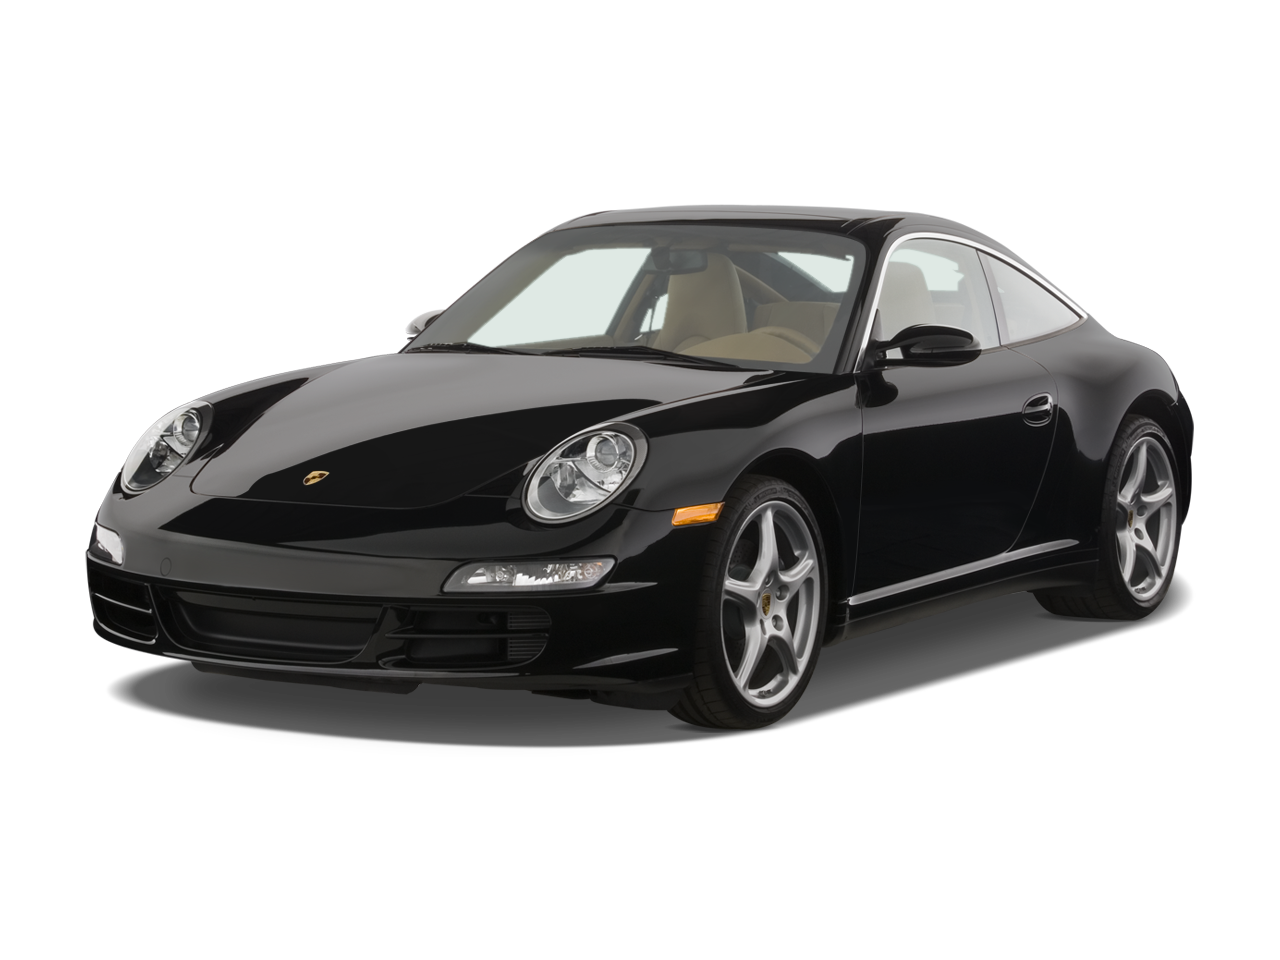 magnus walker 39 s 1971 porsche 911 t 277 meets the sharkwerks 2008 997 gt2. Black Bedroom Furniture Sets. Home Design Ideas